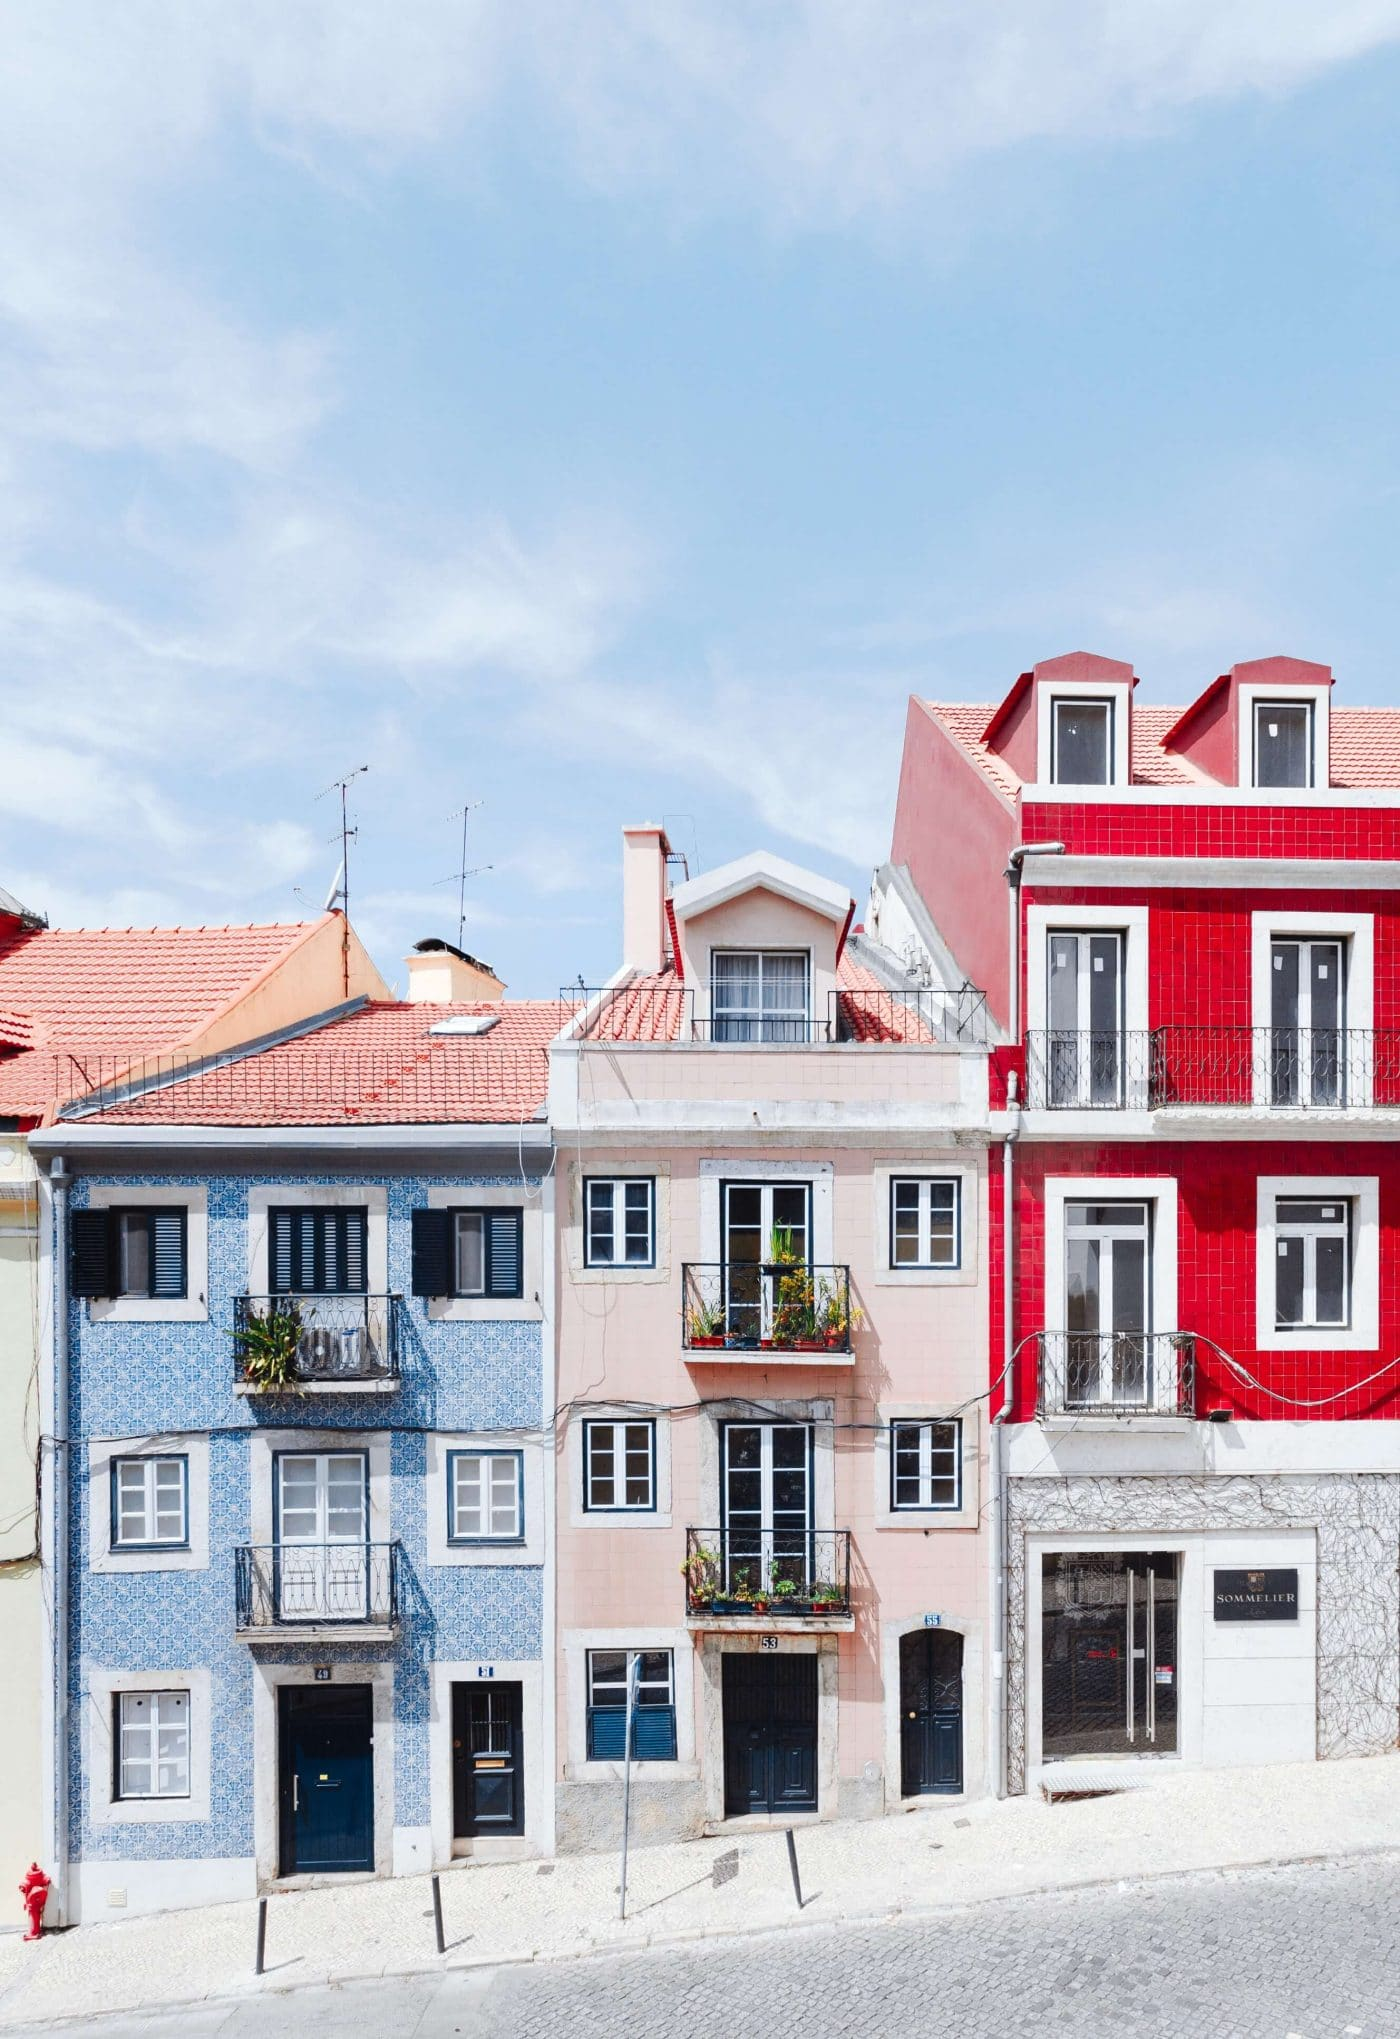 Colorful row houses iN Lisbon, Portugal – Photo by Hugo Sousa on Unsplash